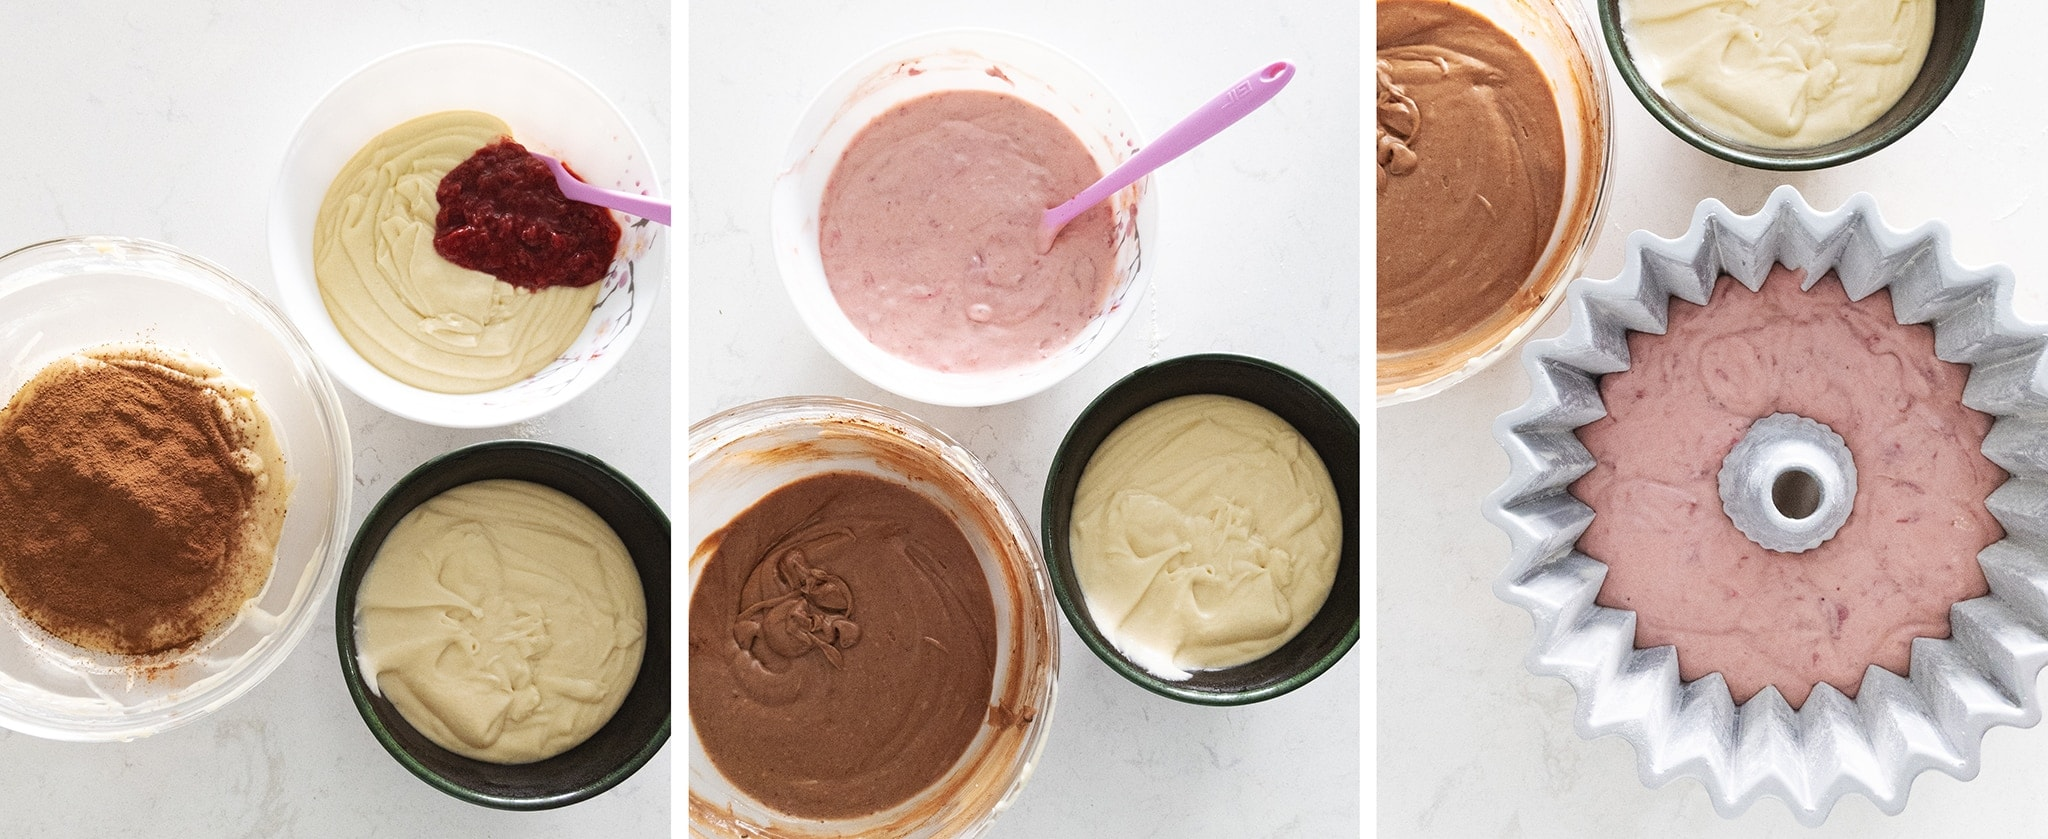 Mixing strawberry, chocolate, and vanilla flavours in separate bowls